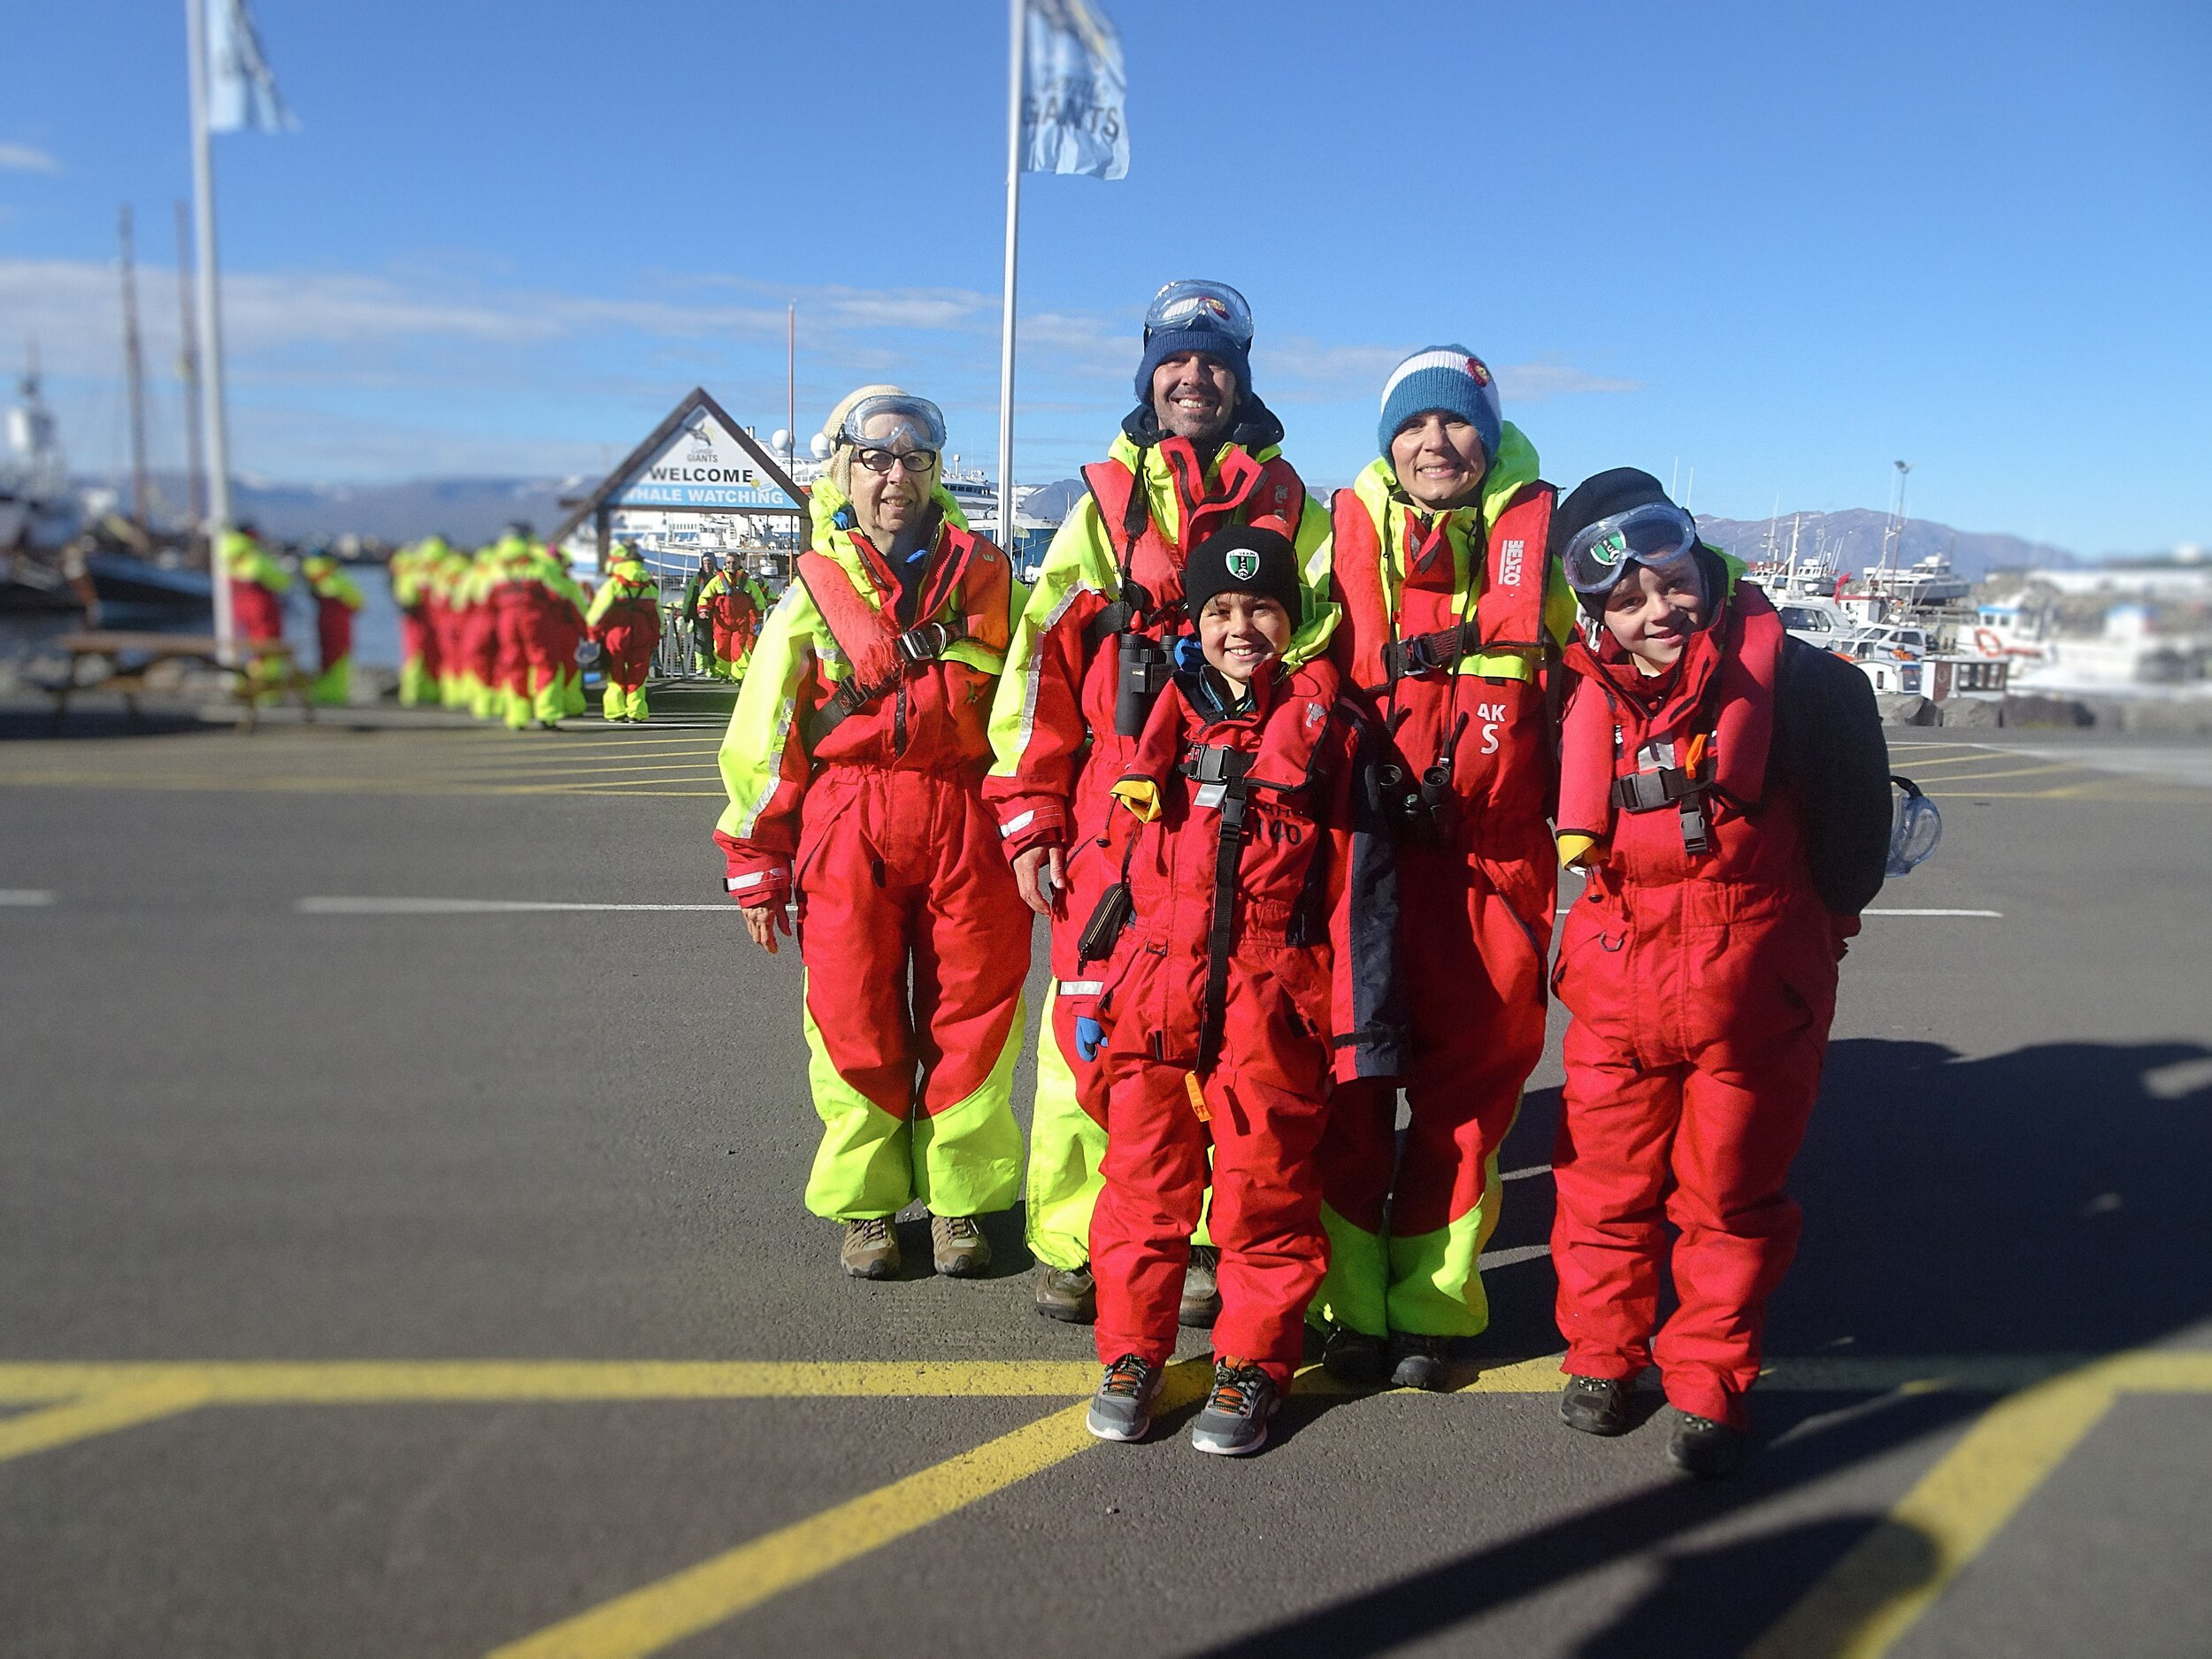 The trip included my mother-in-law, Linda Mundt (far left). Don't we look cute in our gear?